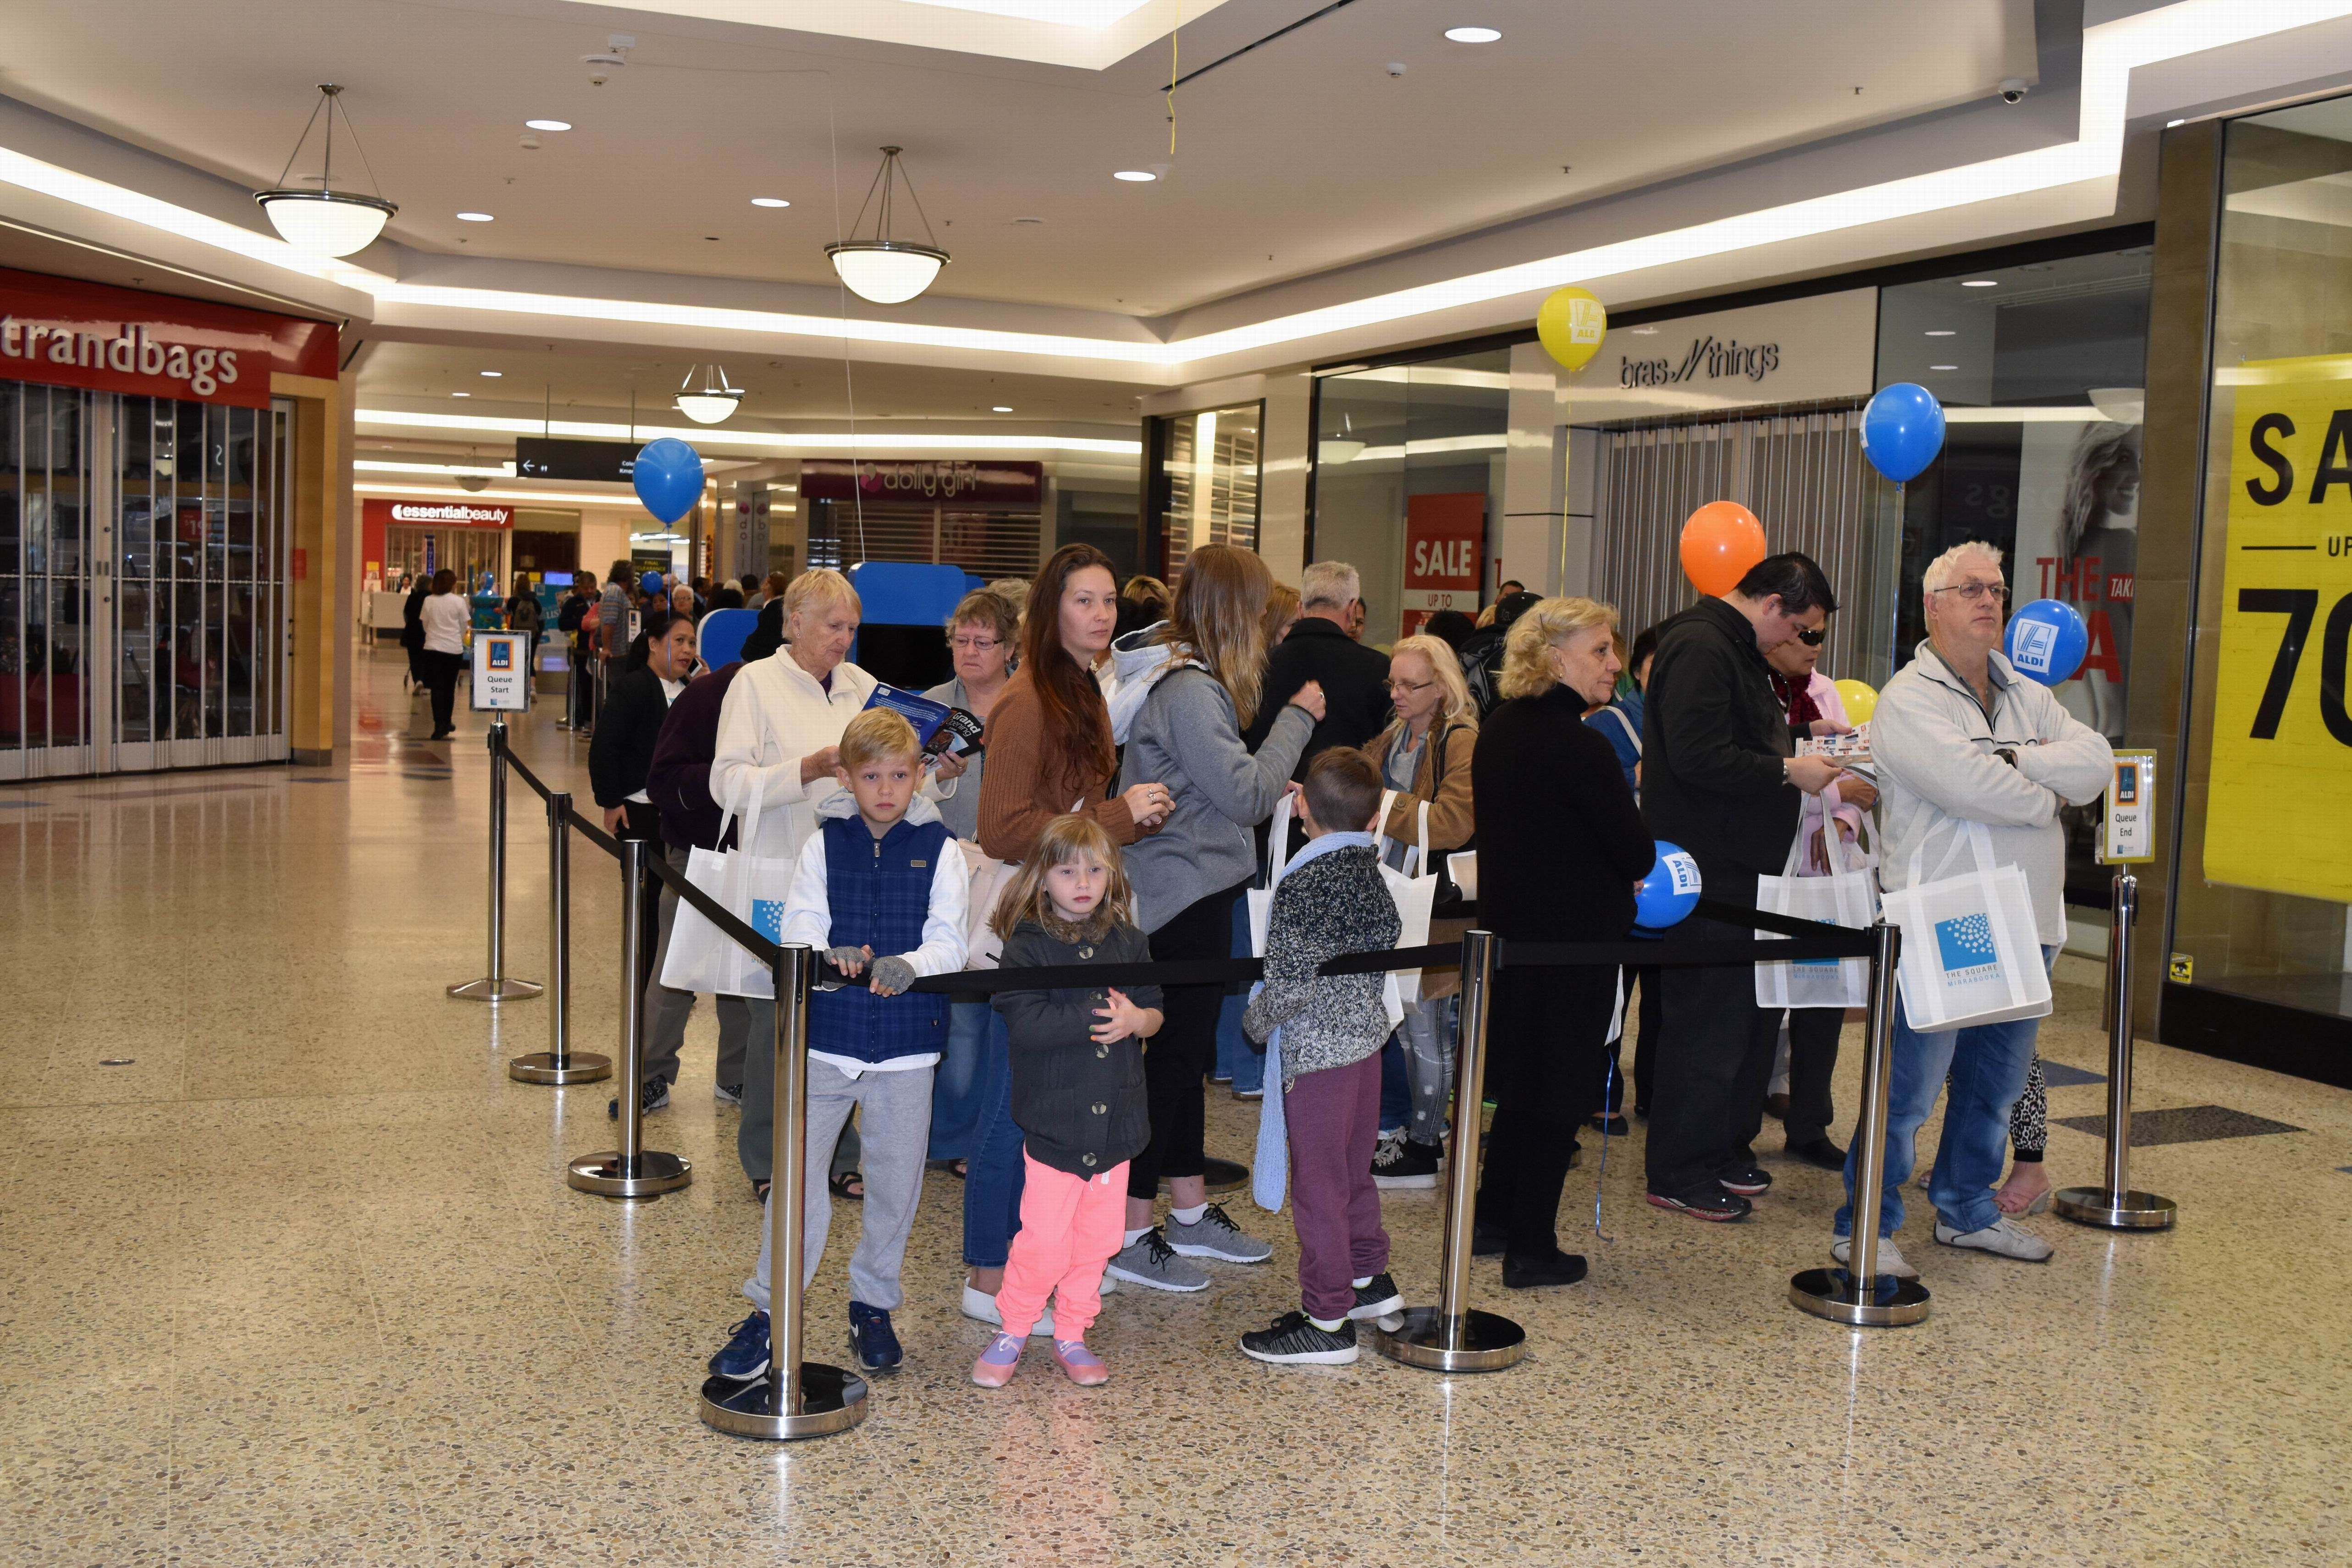 Aldi arrives in WA, and so do the crowds